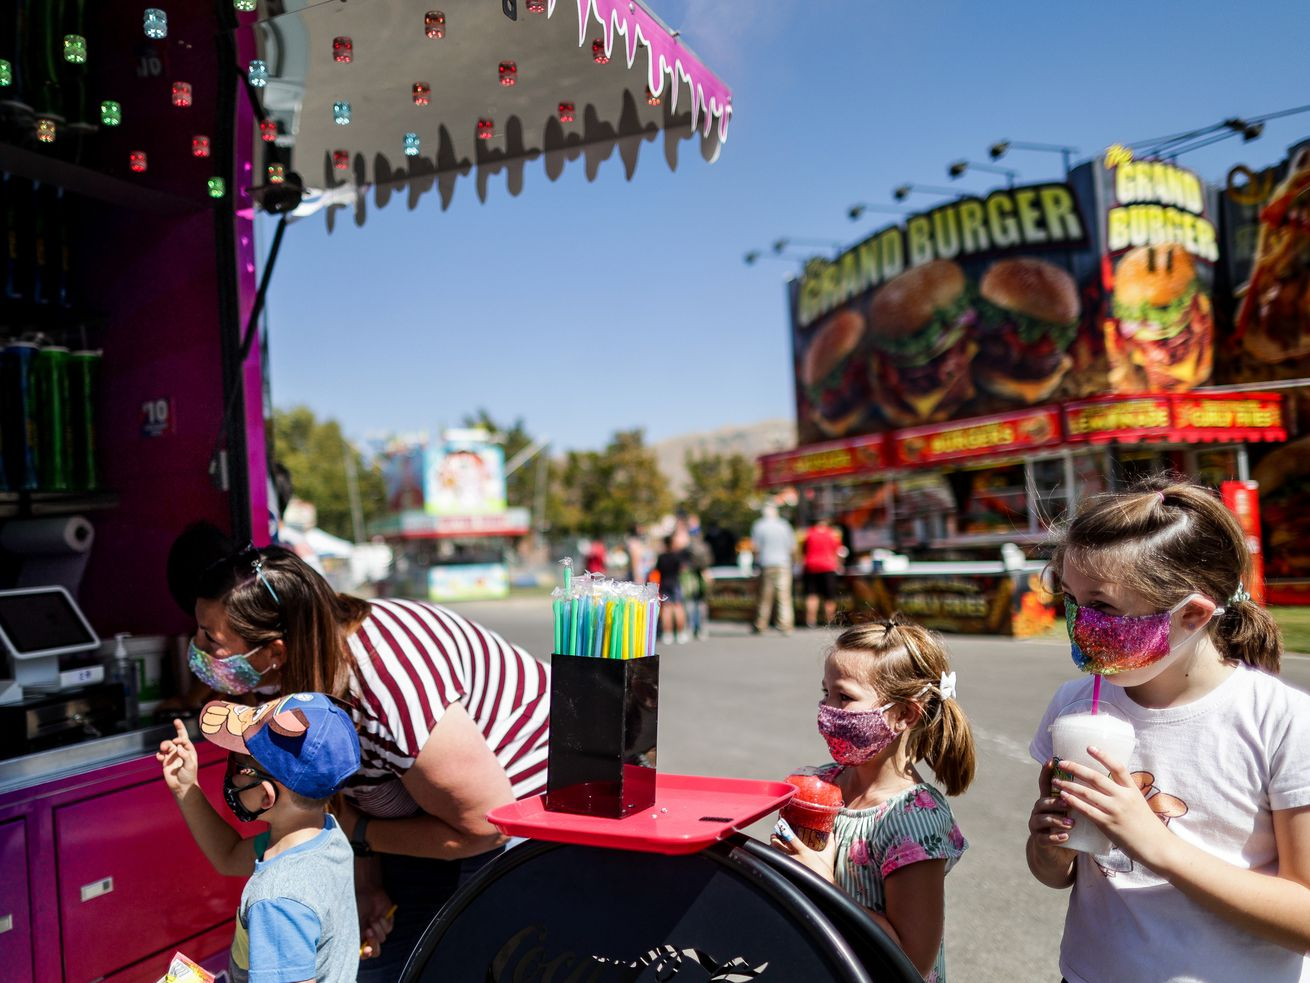 Emmy Doney, right, puts her straw under her mask as she gets slushies with her mother, Cassie, and brother Ryder, 4, left, and sister Brielle, 5, at the Utah State Fair at the fairpark in Salt Lake City on Friday, Sept. 11, 2020.